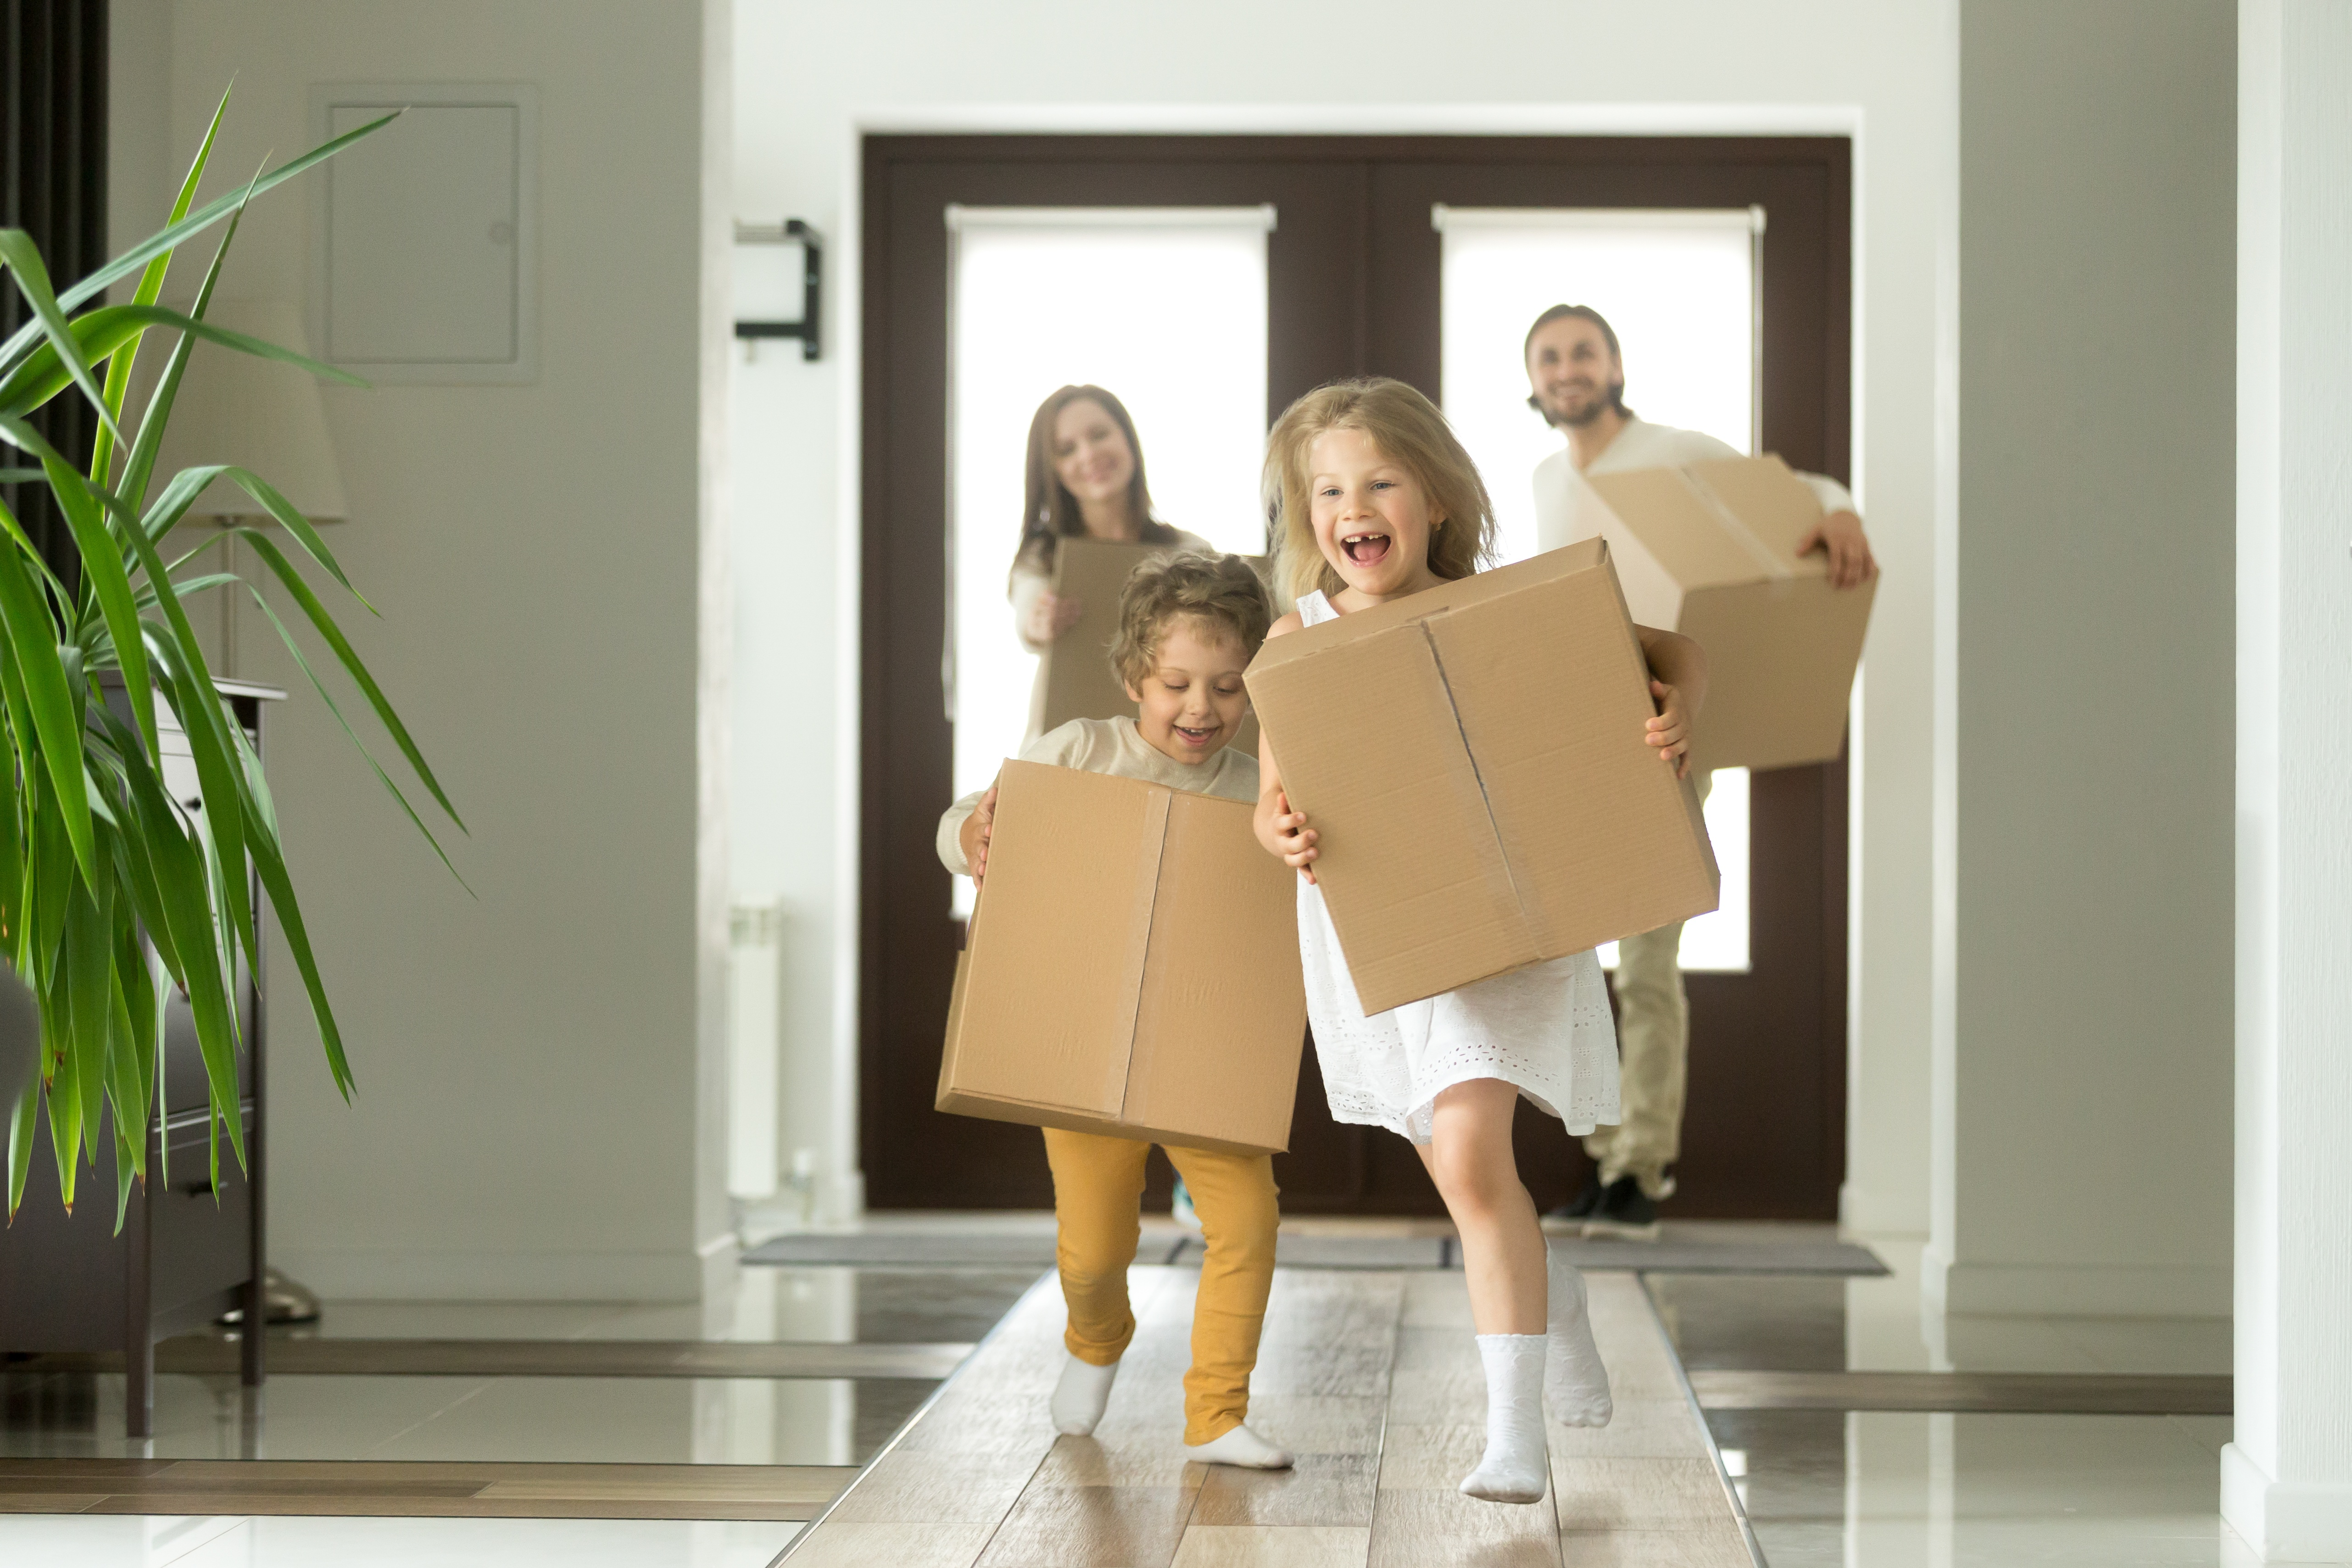 Ready for a Tear Jerker Some of the Best Homebuying Success Stories